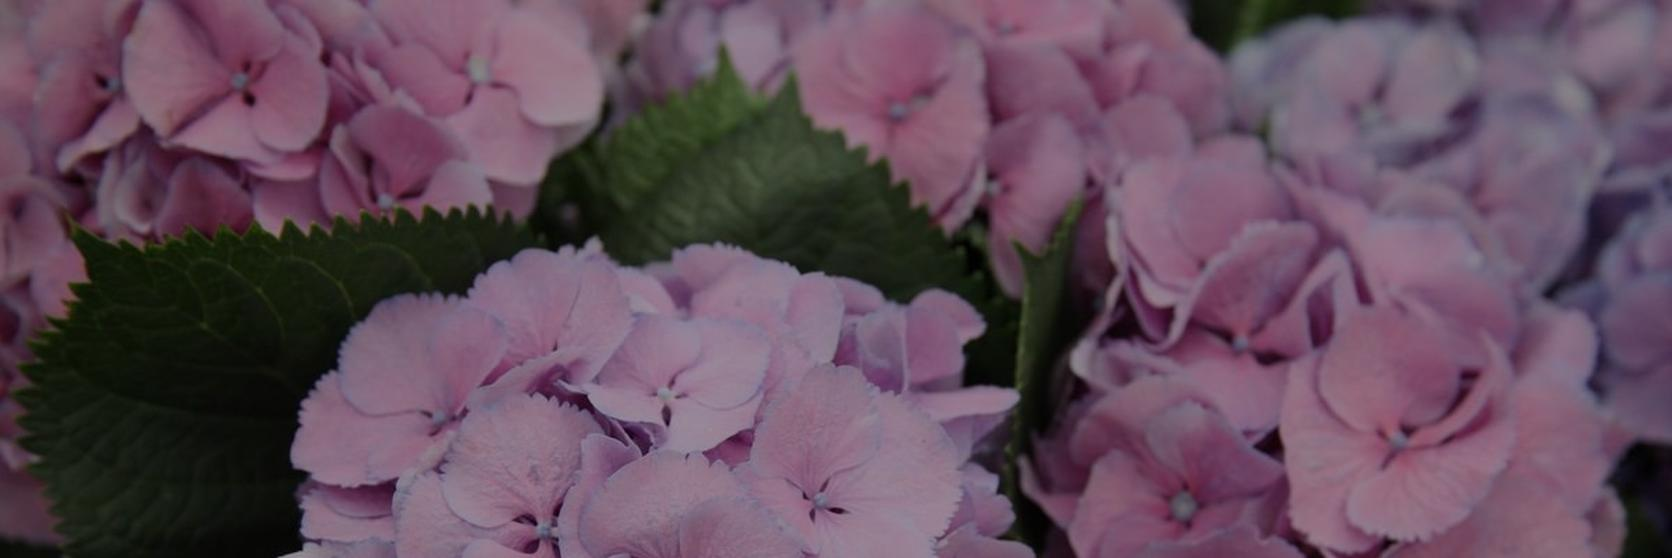 Top-hay-fever-friendly-flowers-1